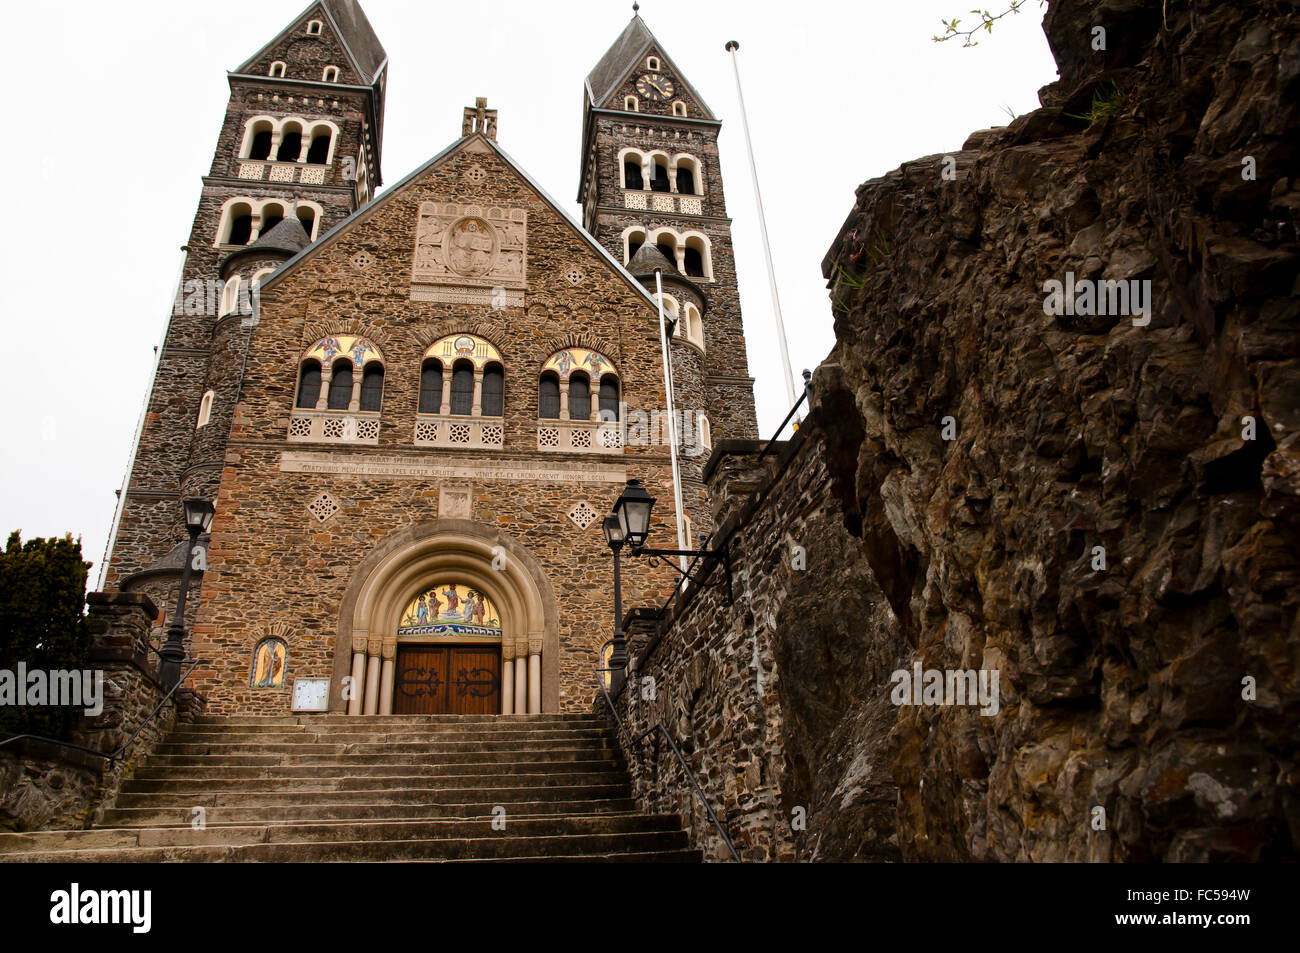 Saints Cosmas and Damian Church - Clervaux - Luxembourg - Stock Image